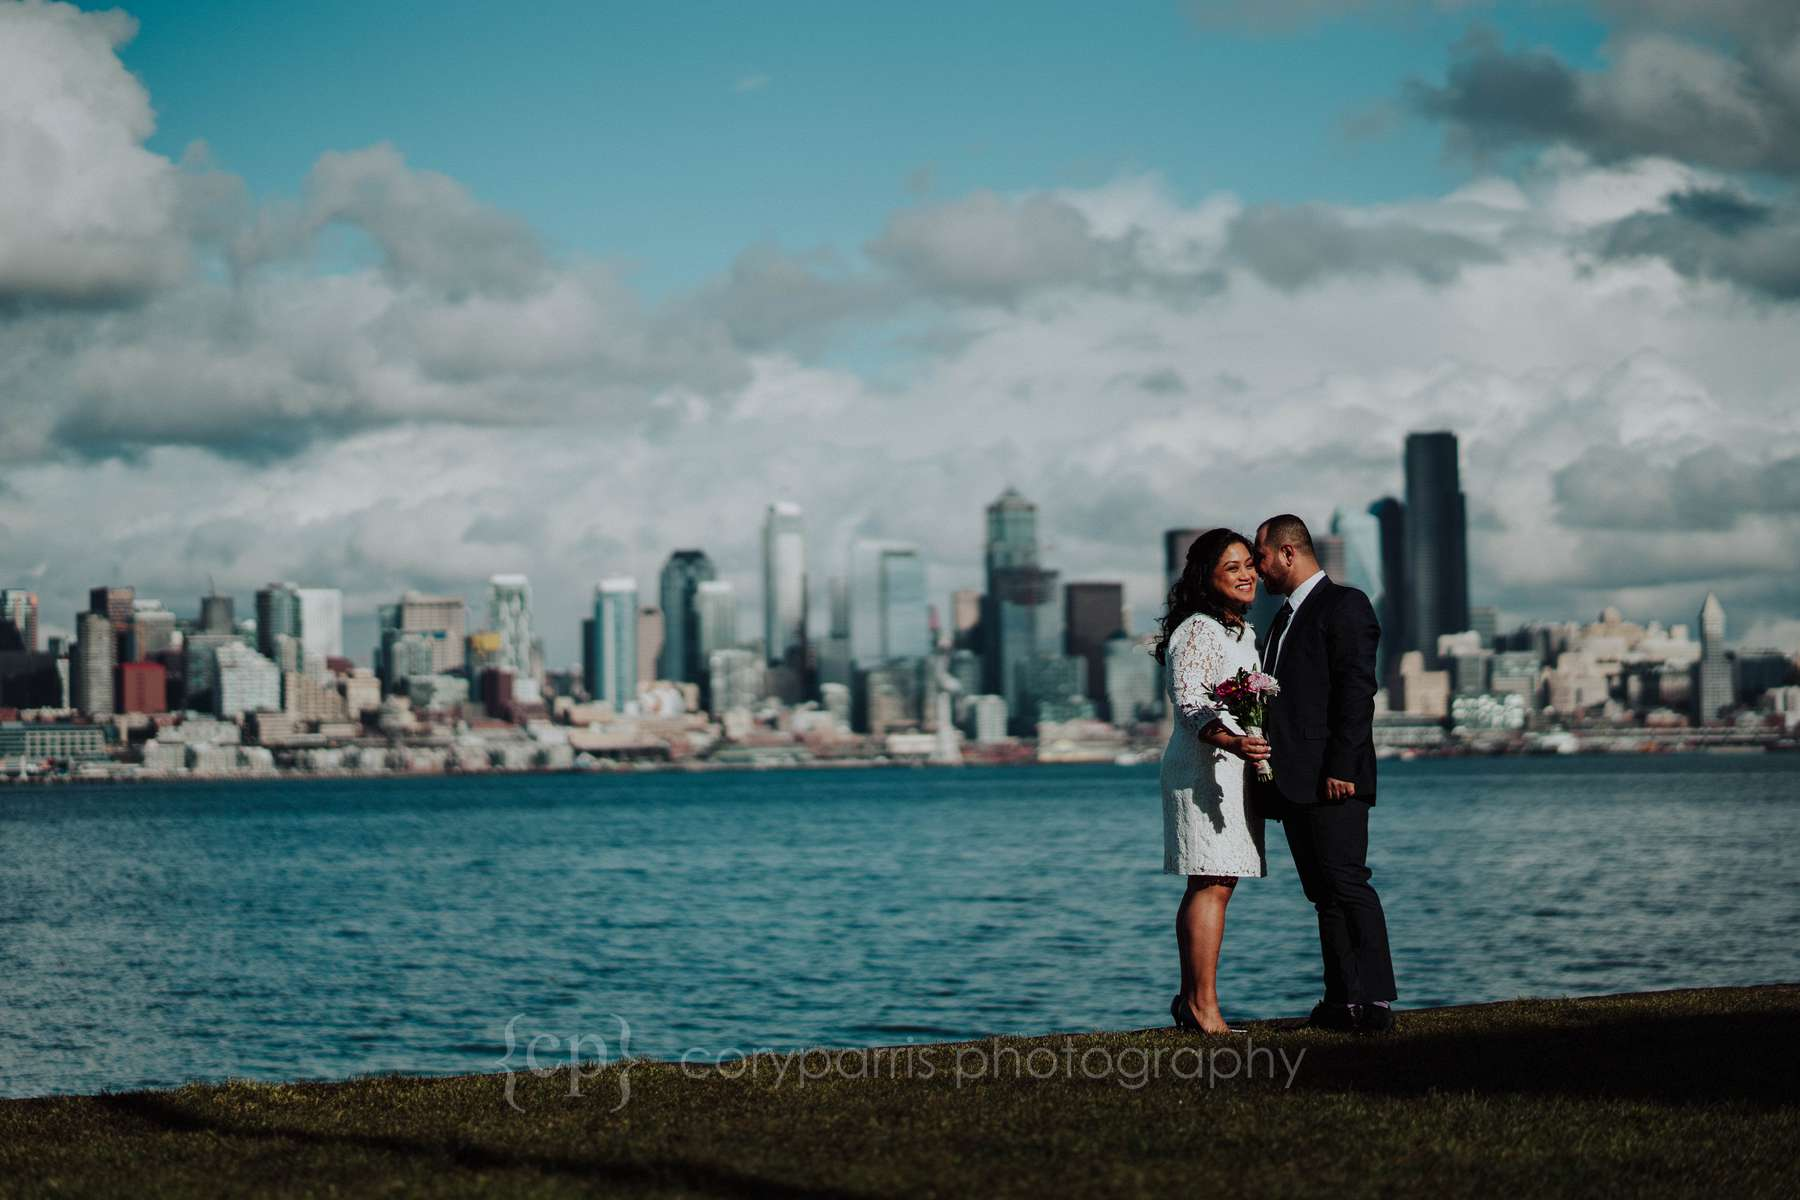 039-seattle-courthouse-elopement.jpg